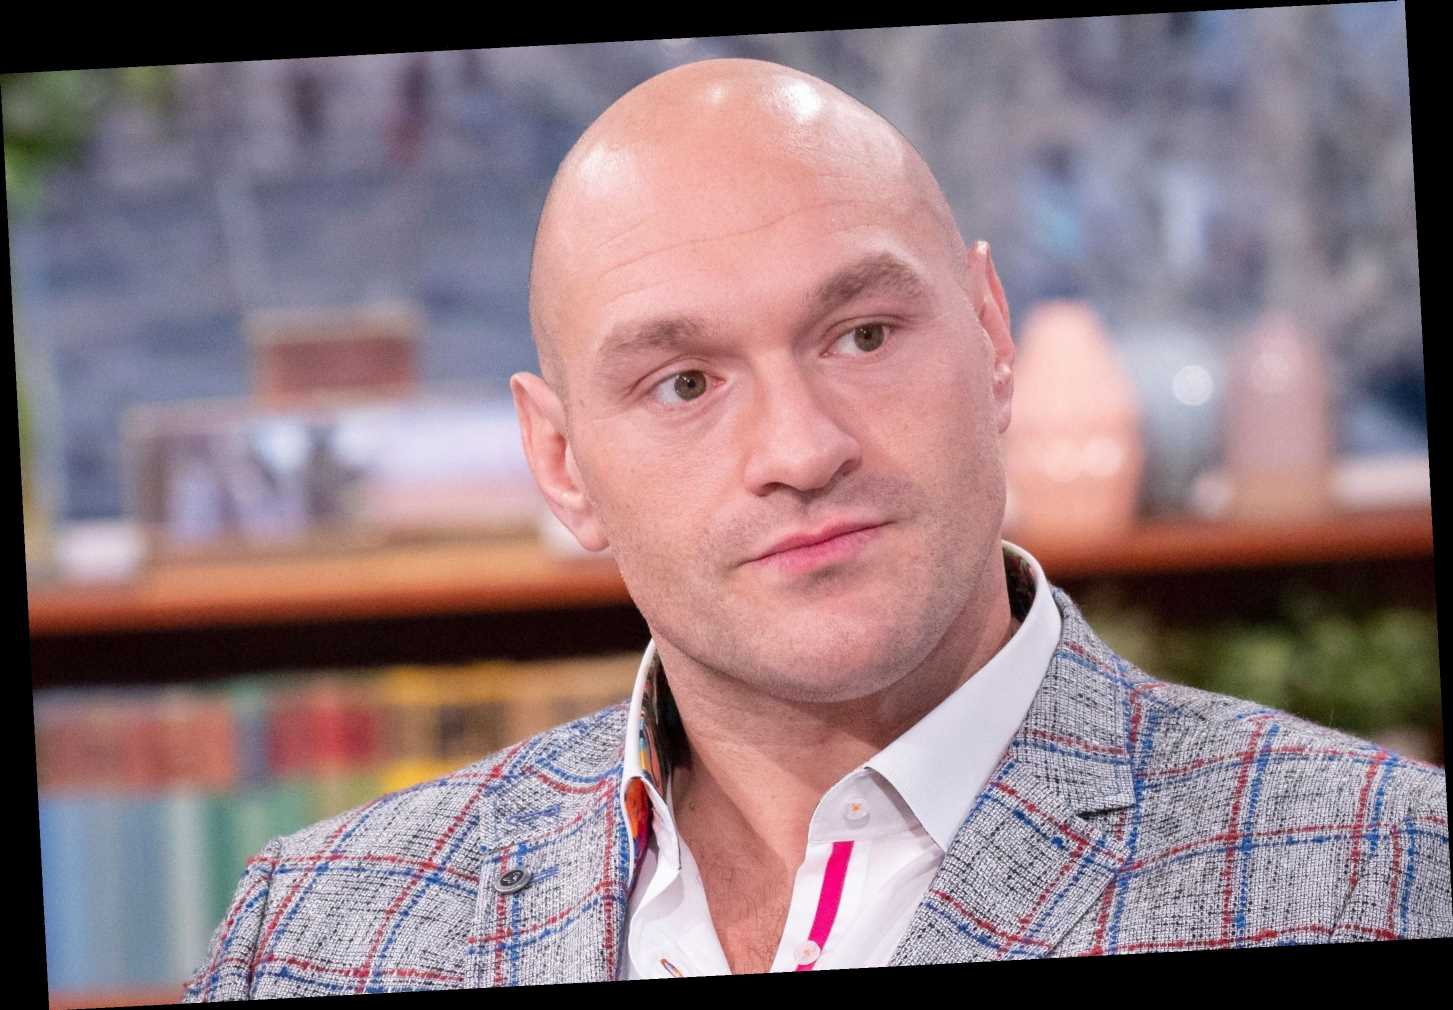 Fury vs Wilder LIVE REACTION: Fury to RETIRE after two more fights, Joshua LATEST, Whyte vs Povetkin date – The Sun